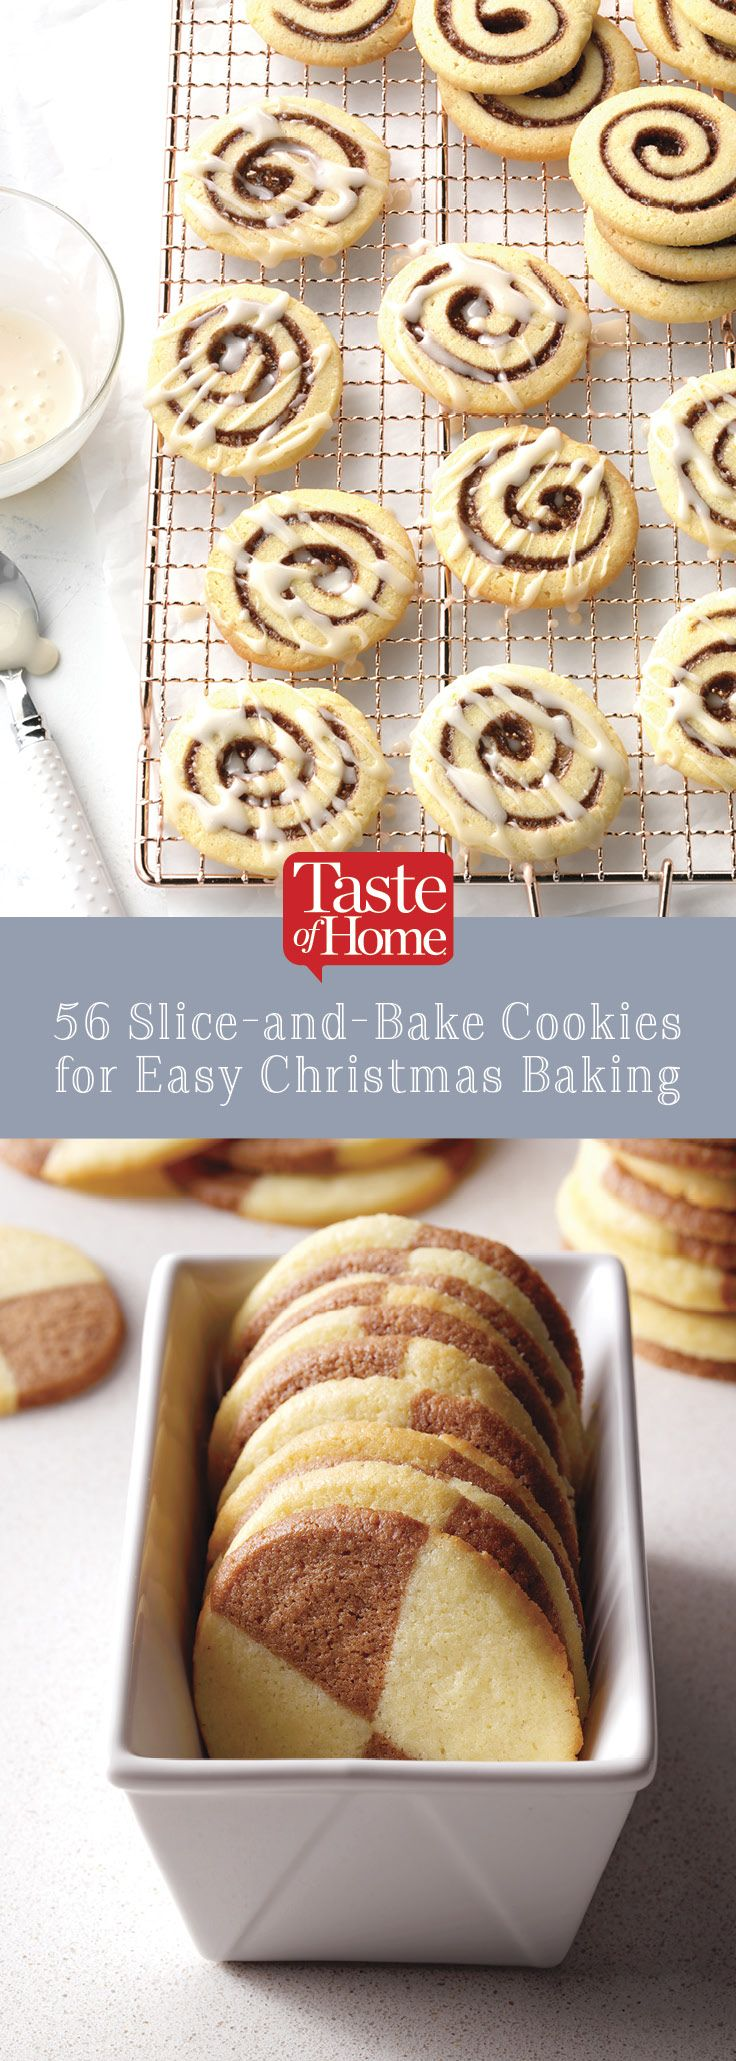 56 Slice-and-Bake Cookies for Easy Christmas Baking